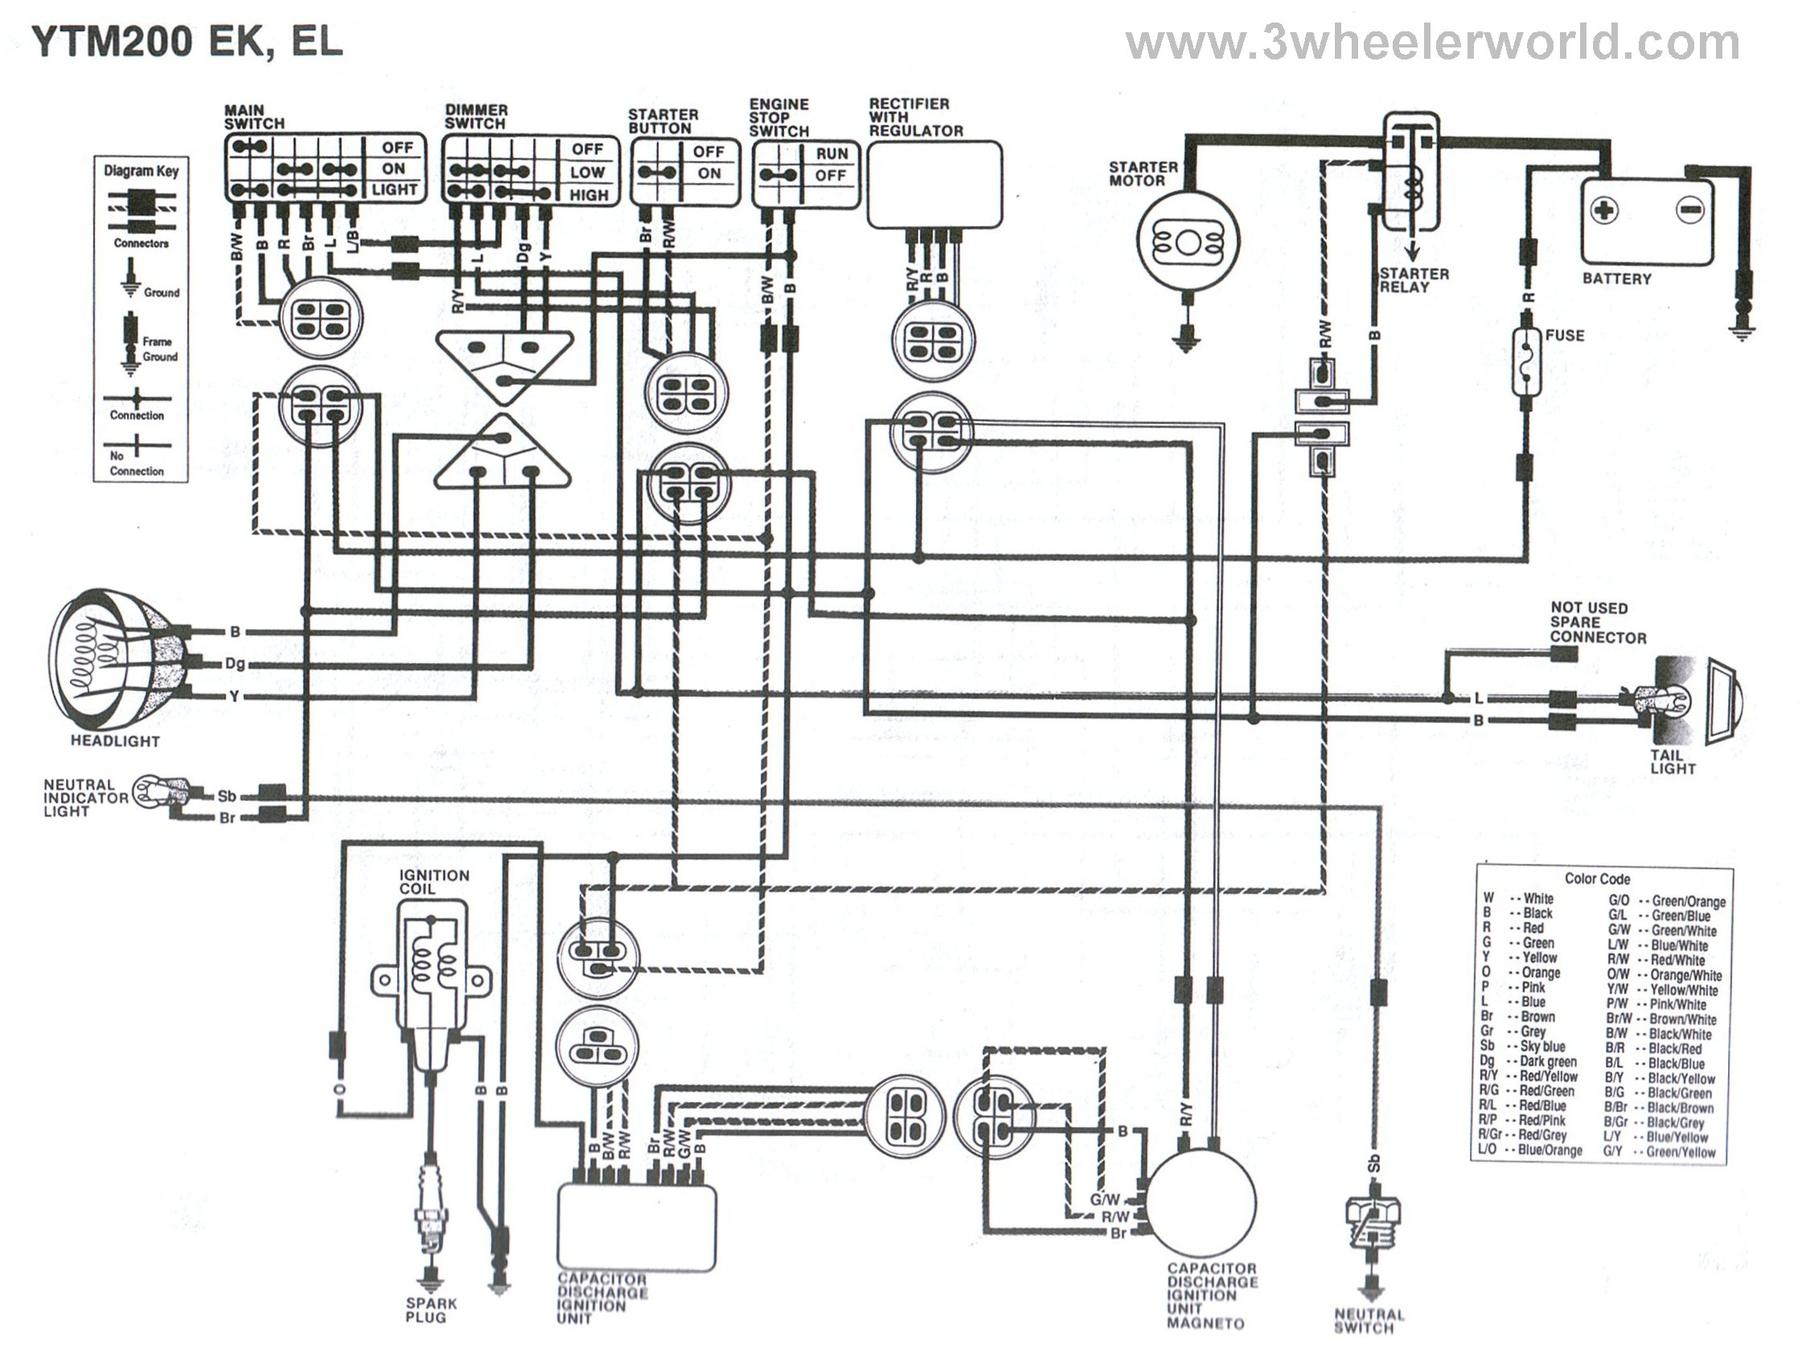 wiring diagram for yamaha big bear 400 with 1 The Front Page on Polaris Xplorer 400 4x4 Wiring Diagram furthermore Honda Rancher 350 Wiring Diagram furthermore Yamaha Wiring System as well T2363 Wire Diagram Of 06 660 Dash likewise Bearingsseals.